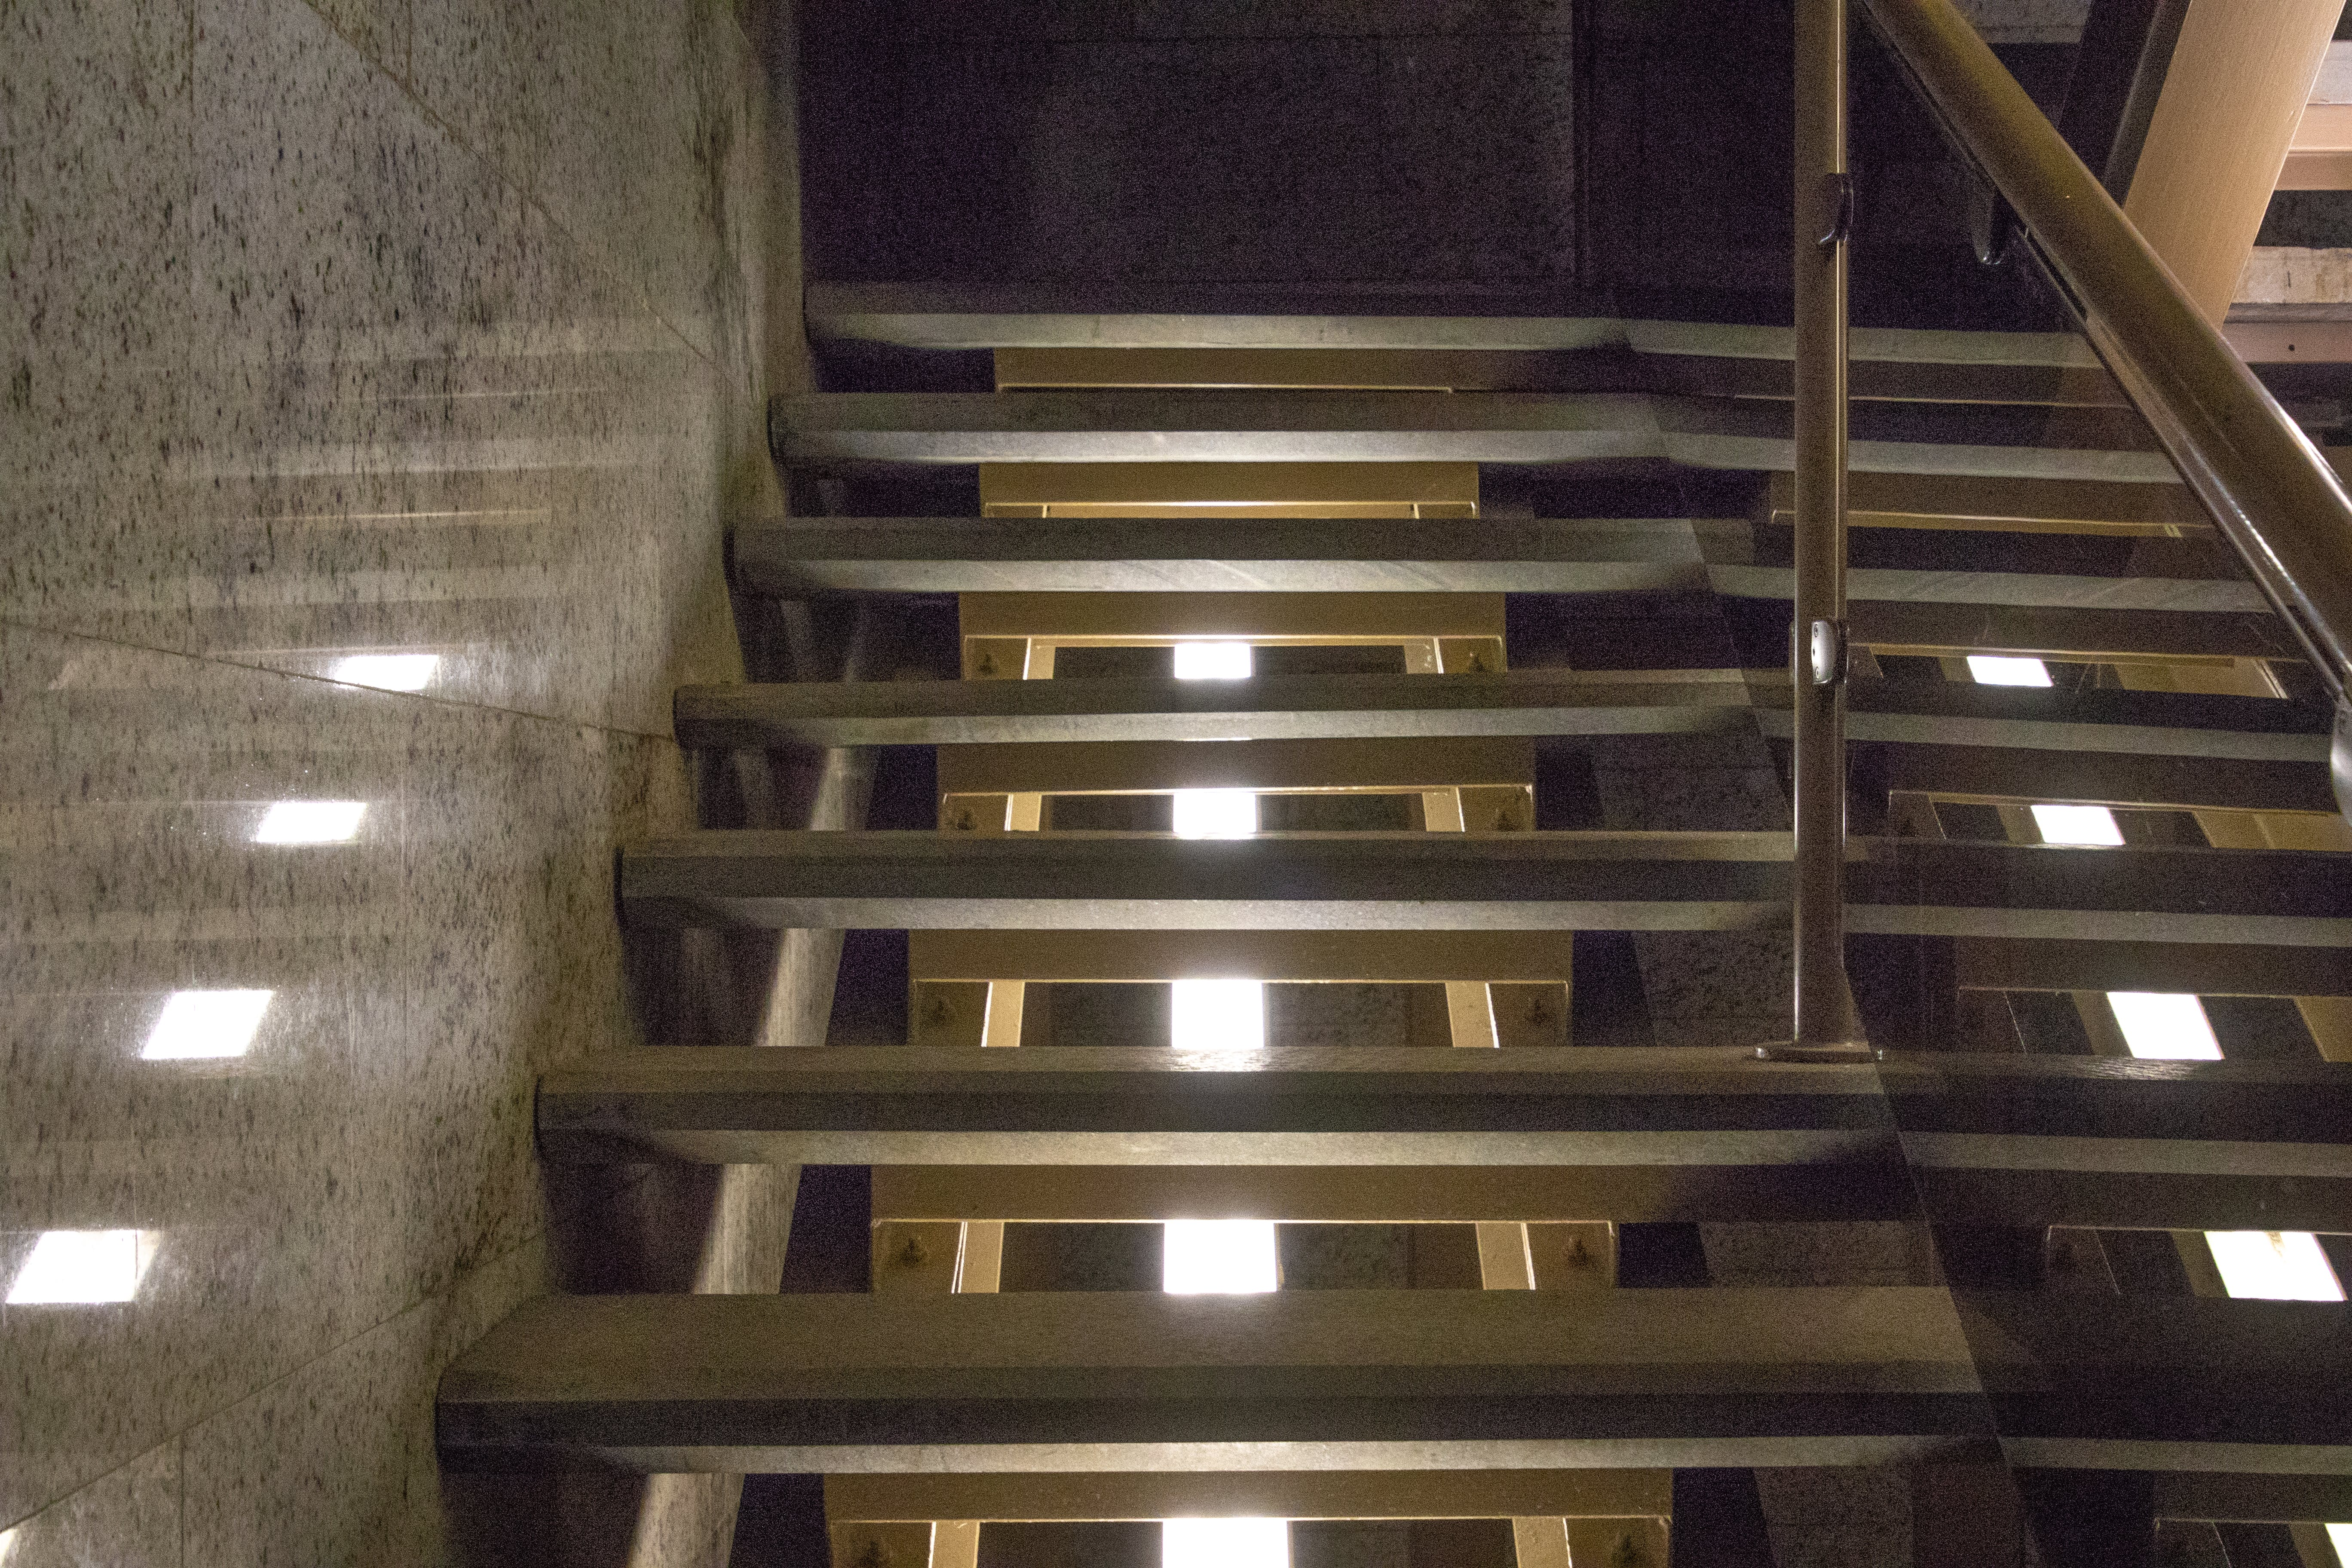 Free stock photo of stairs, building, architecture, monument